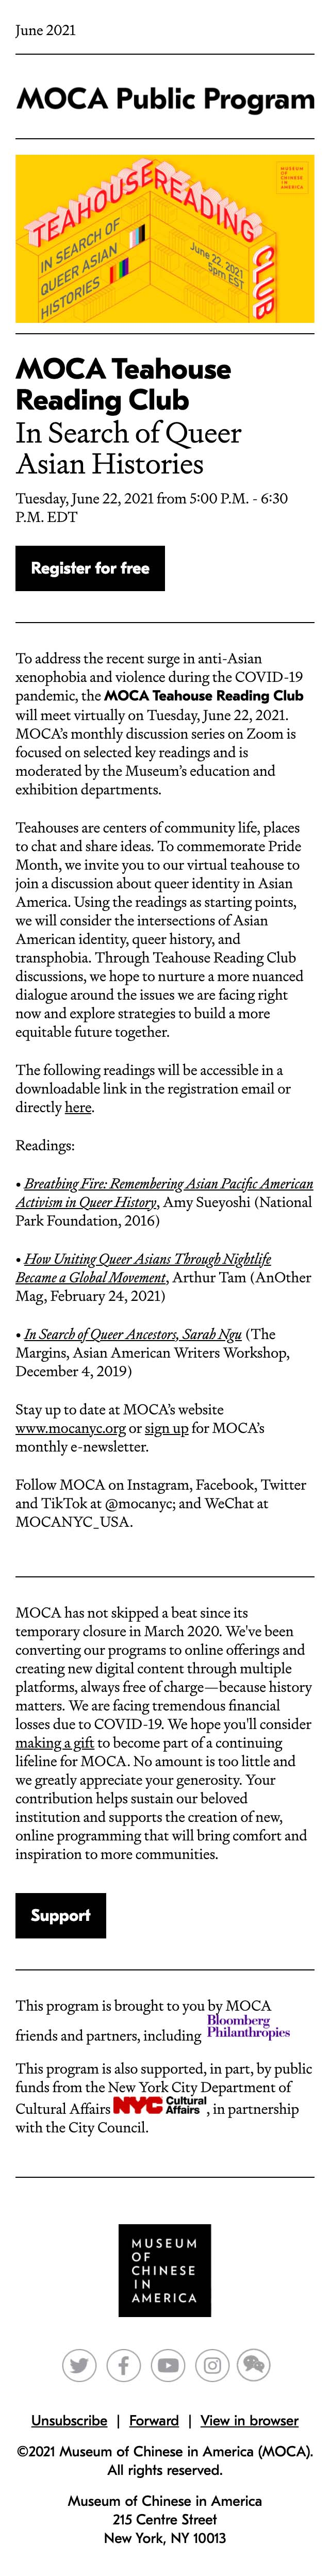 MOCA Teahouse Reading Club: In Search of Queer Asian Histories - mobile view